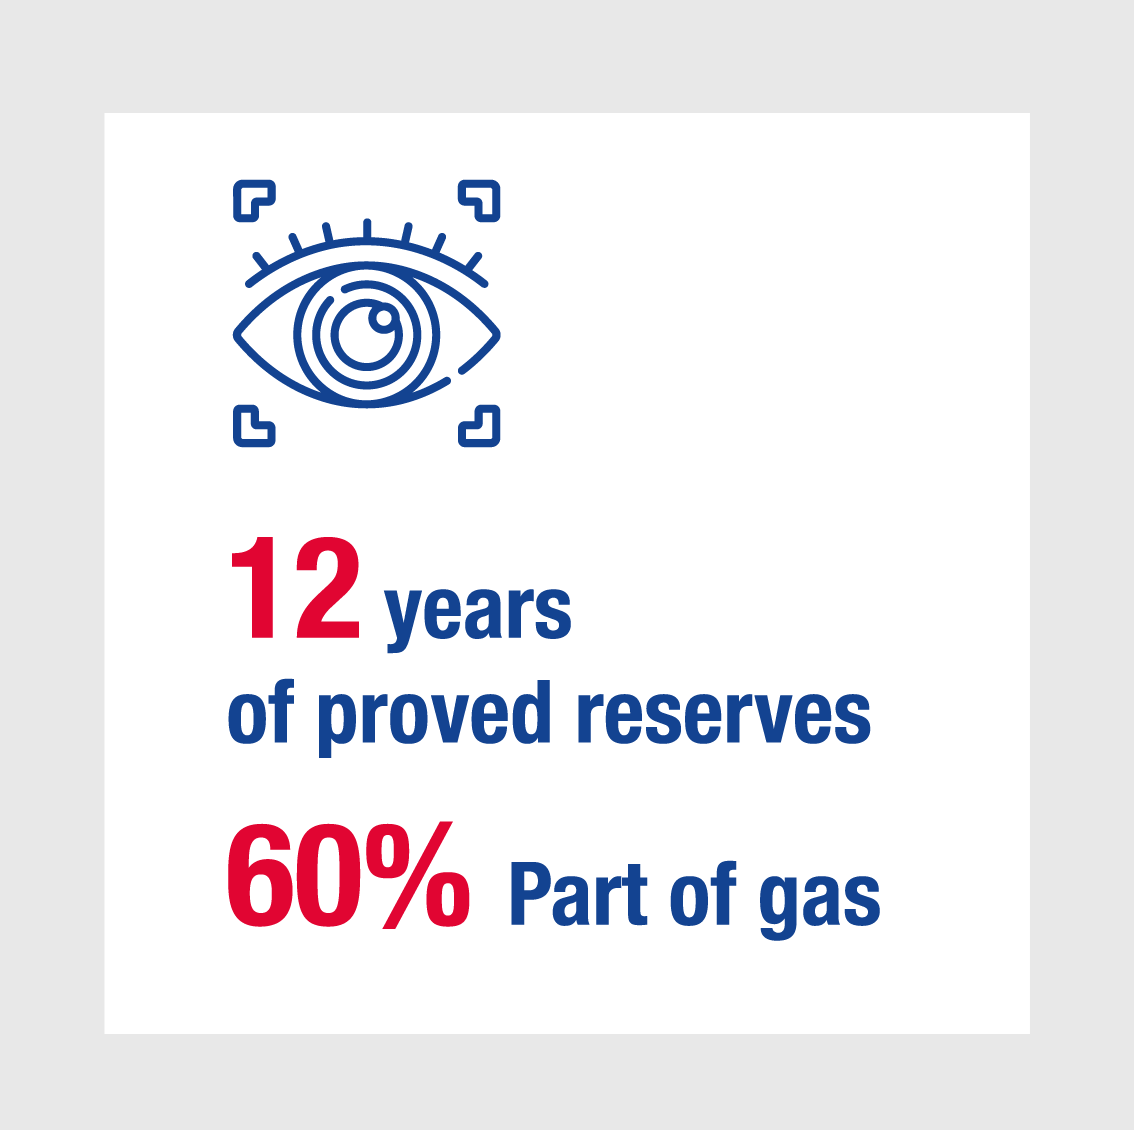 12 years of proved reserves 60% Part of gas